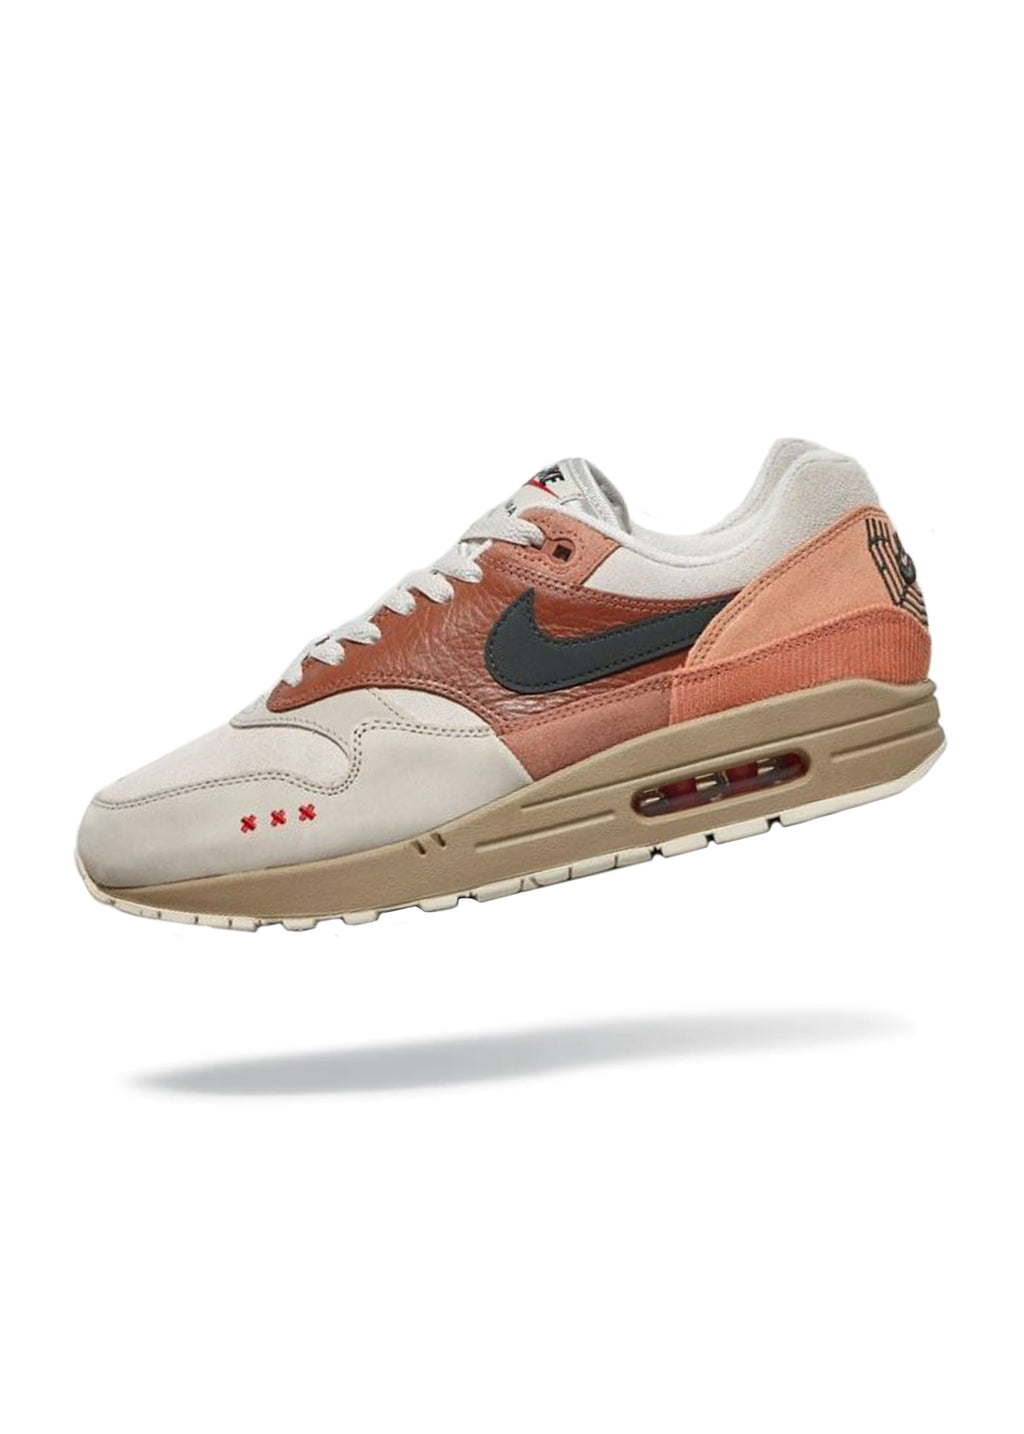 NIKE AIR MAX 1 Amsterdam city pack